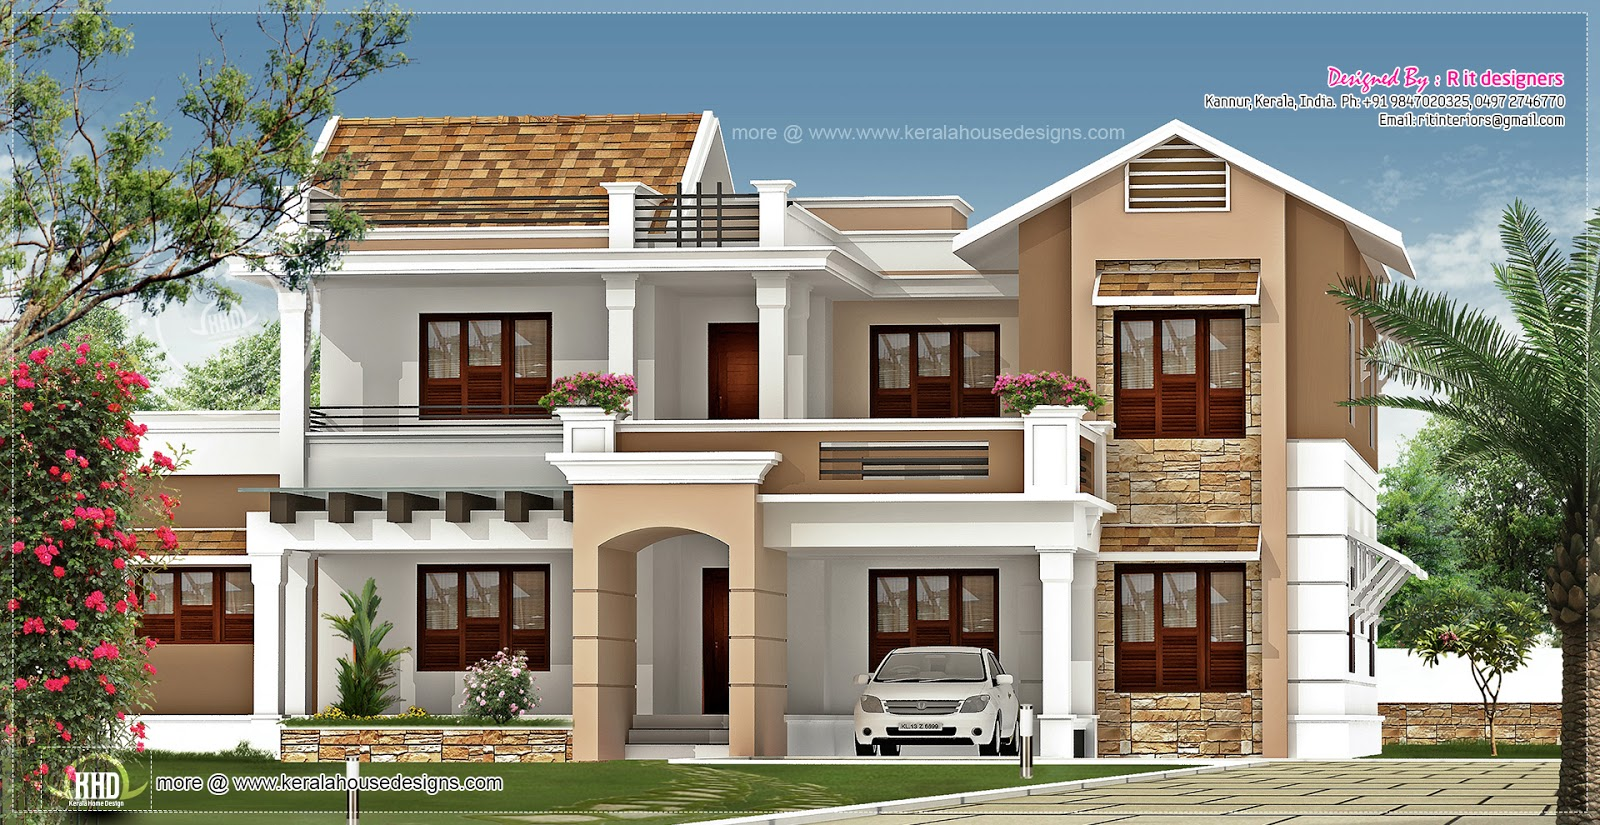 New villa exterior design in 3740 kerala home for Villa ideas designs